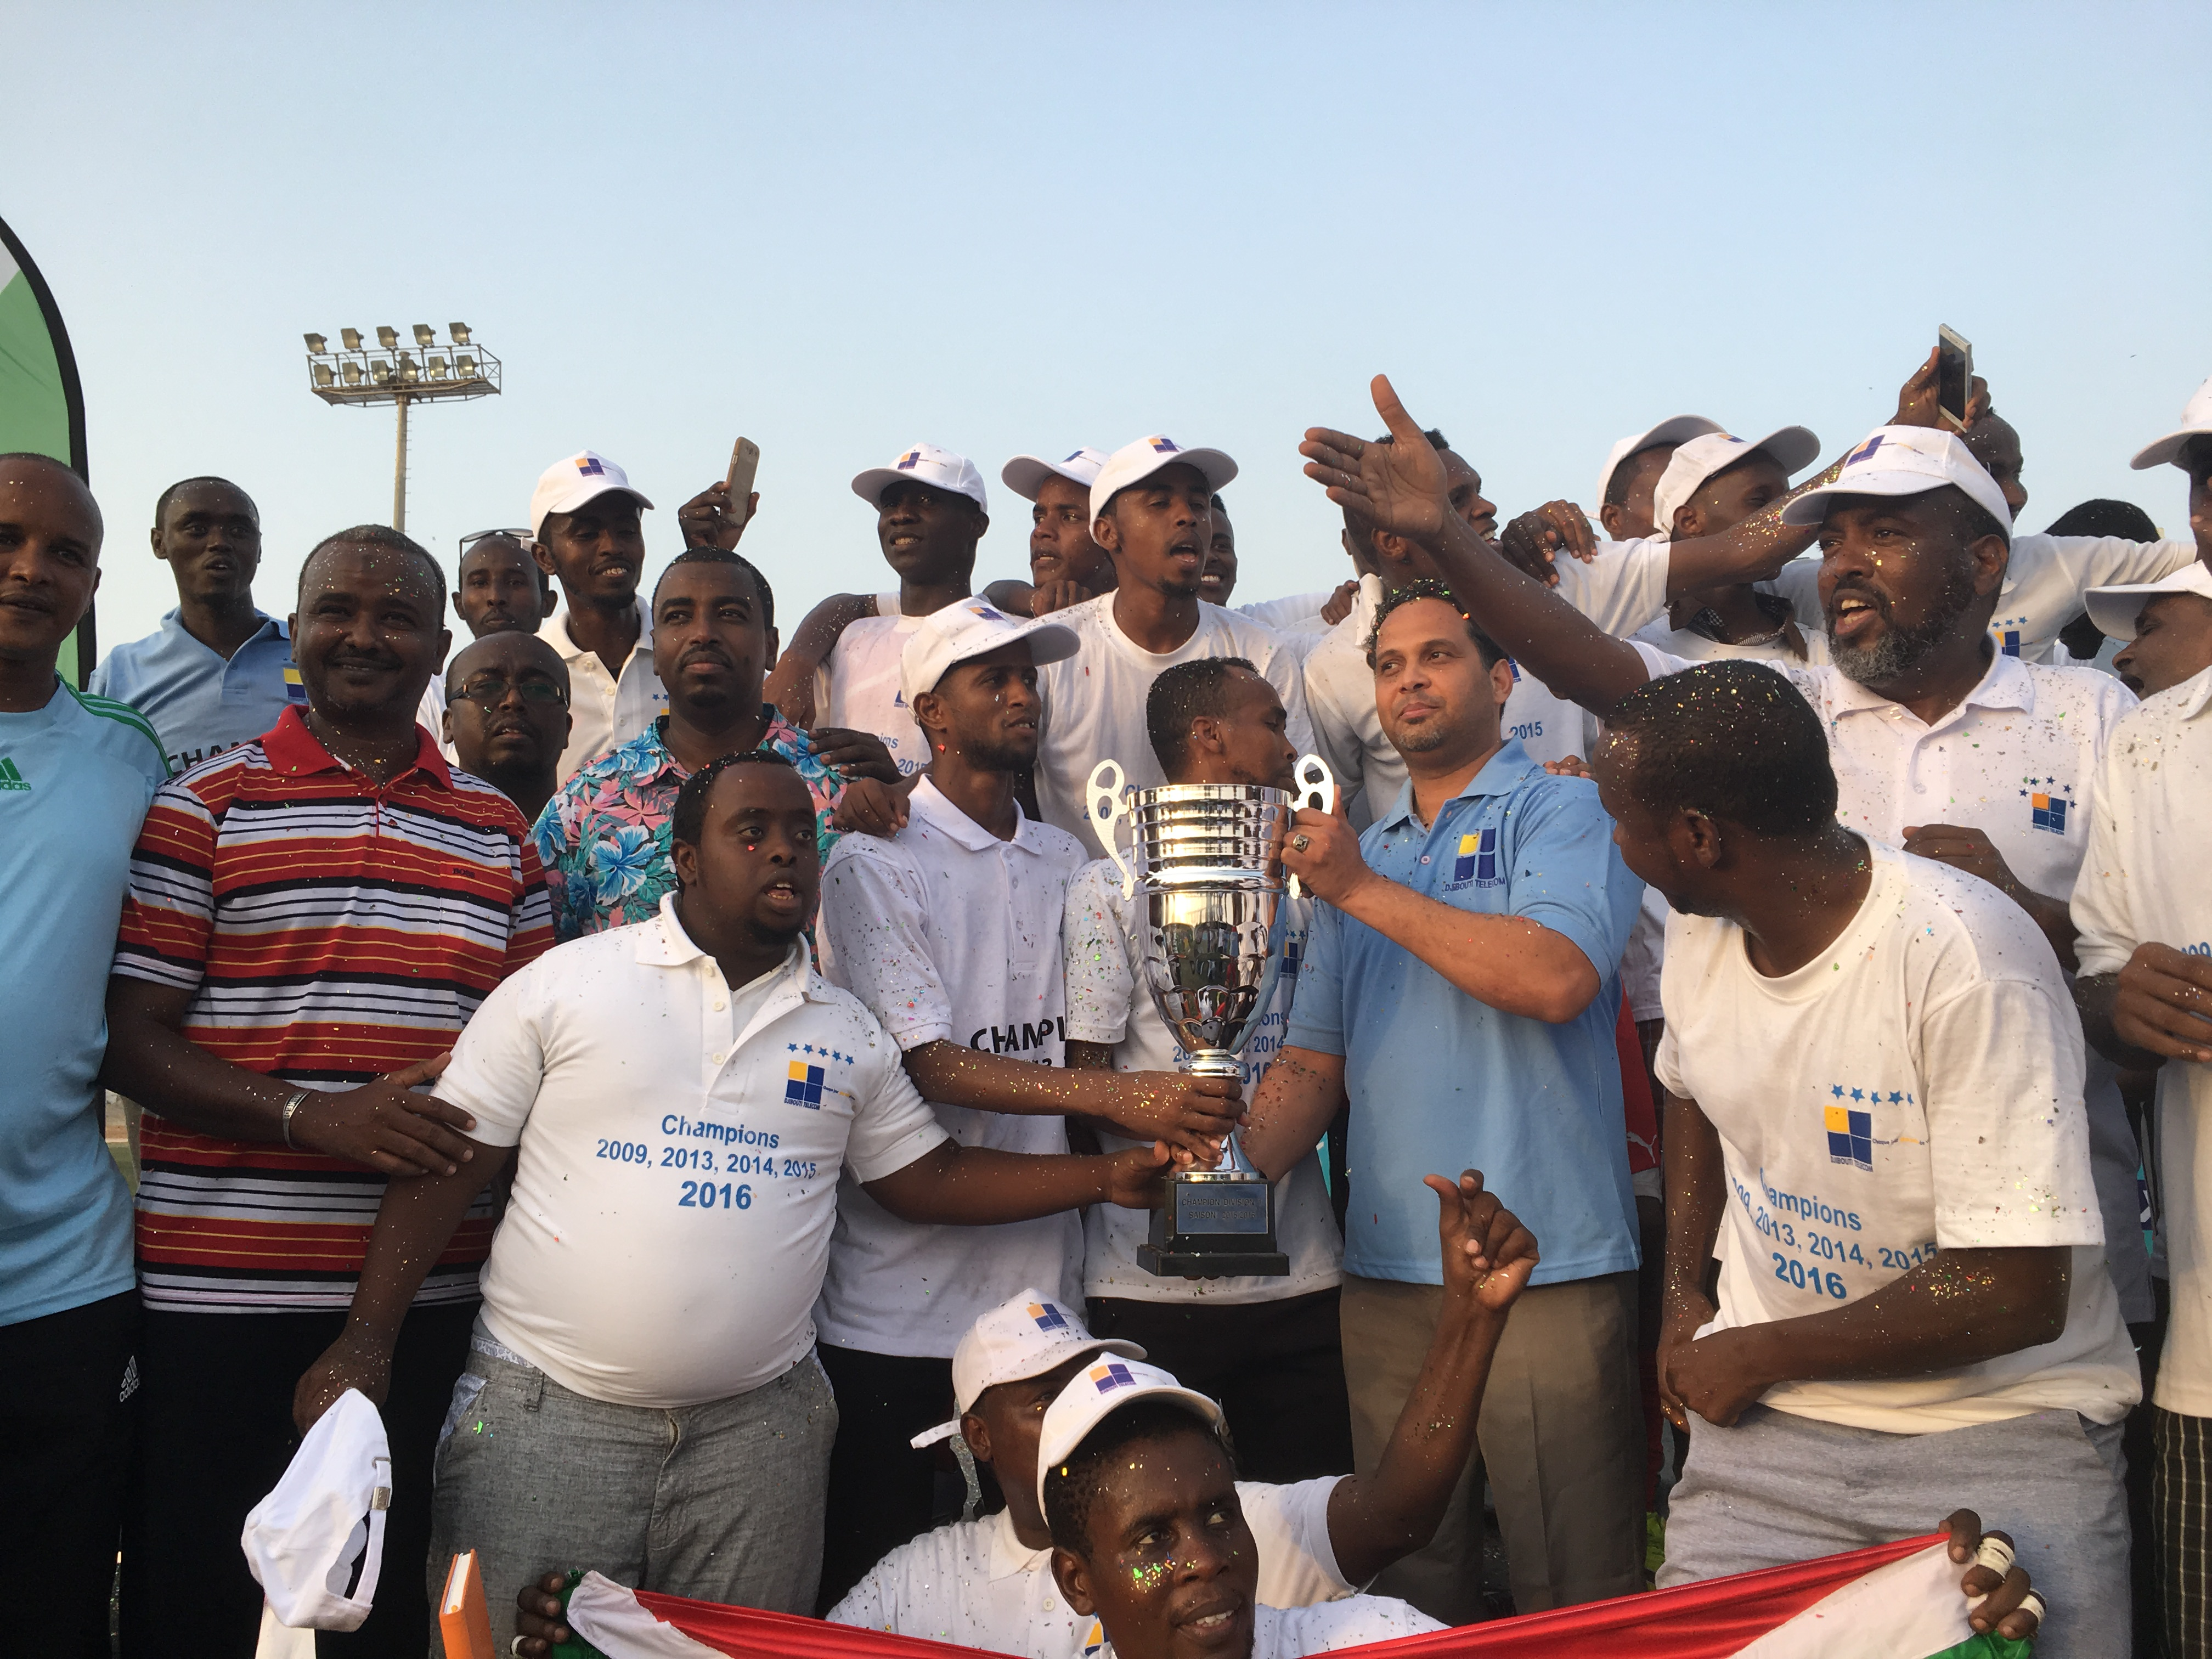 Djibouti Telecom FC celebrate their 4th successive national league title on Friday 20th of May 2016